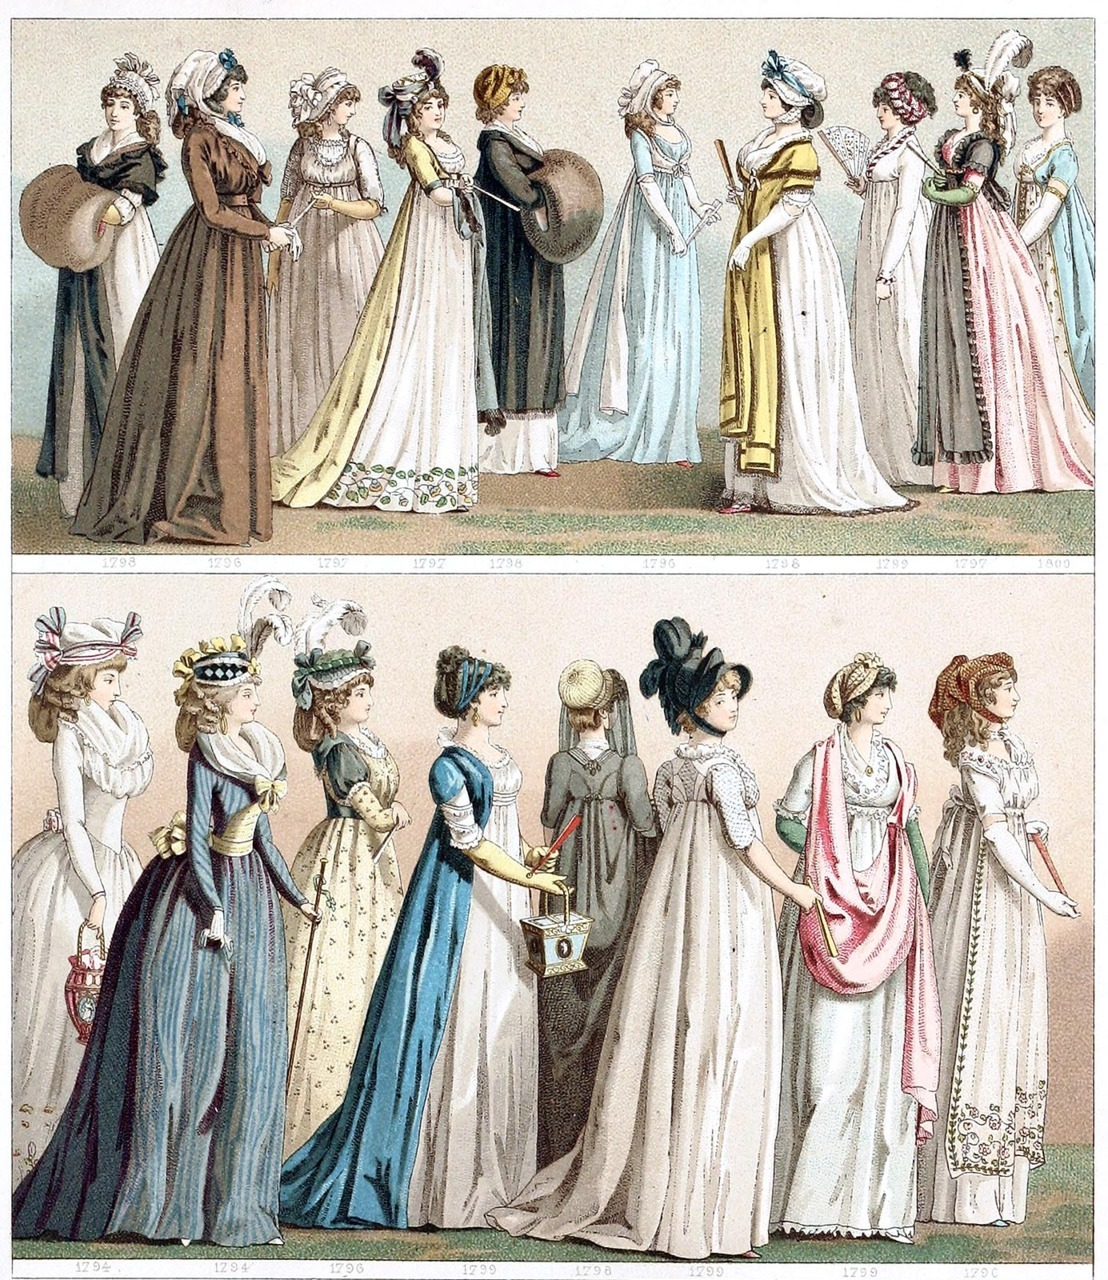 oldbookillustrations:  France, women's dresses between 1794 and 1800. From Geschichte des Kostüms (The costume history) vol. 5, by Auguste Racinet, Berlin, 1888. (Source: archive.org)